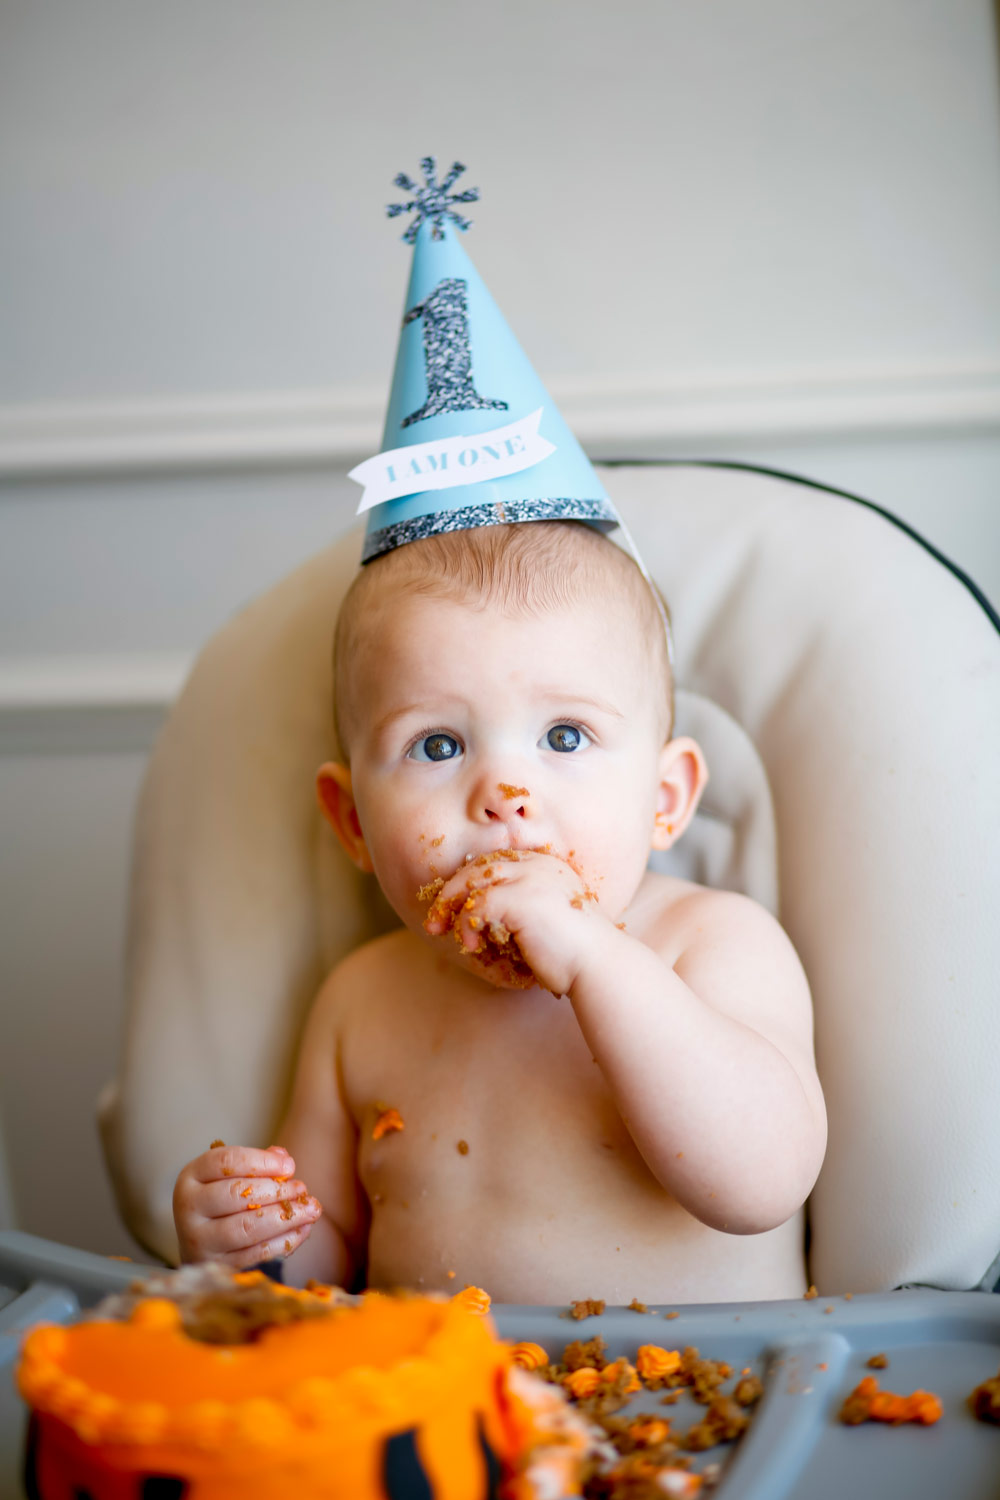 first-birthday-party-photographer-madison-wi-wisconsin-dells-lake-delton-ruthie-hauge-photography-private-event.jpg